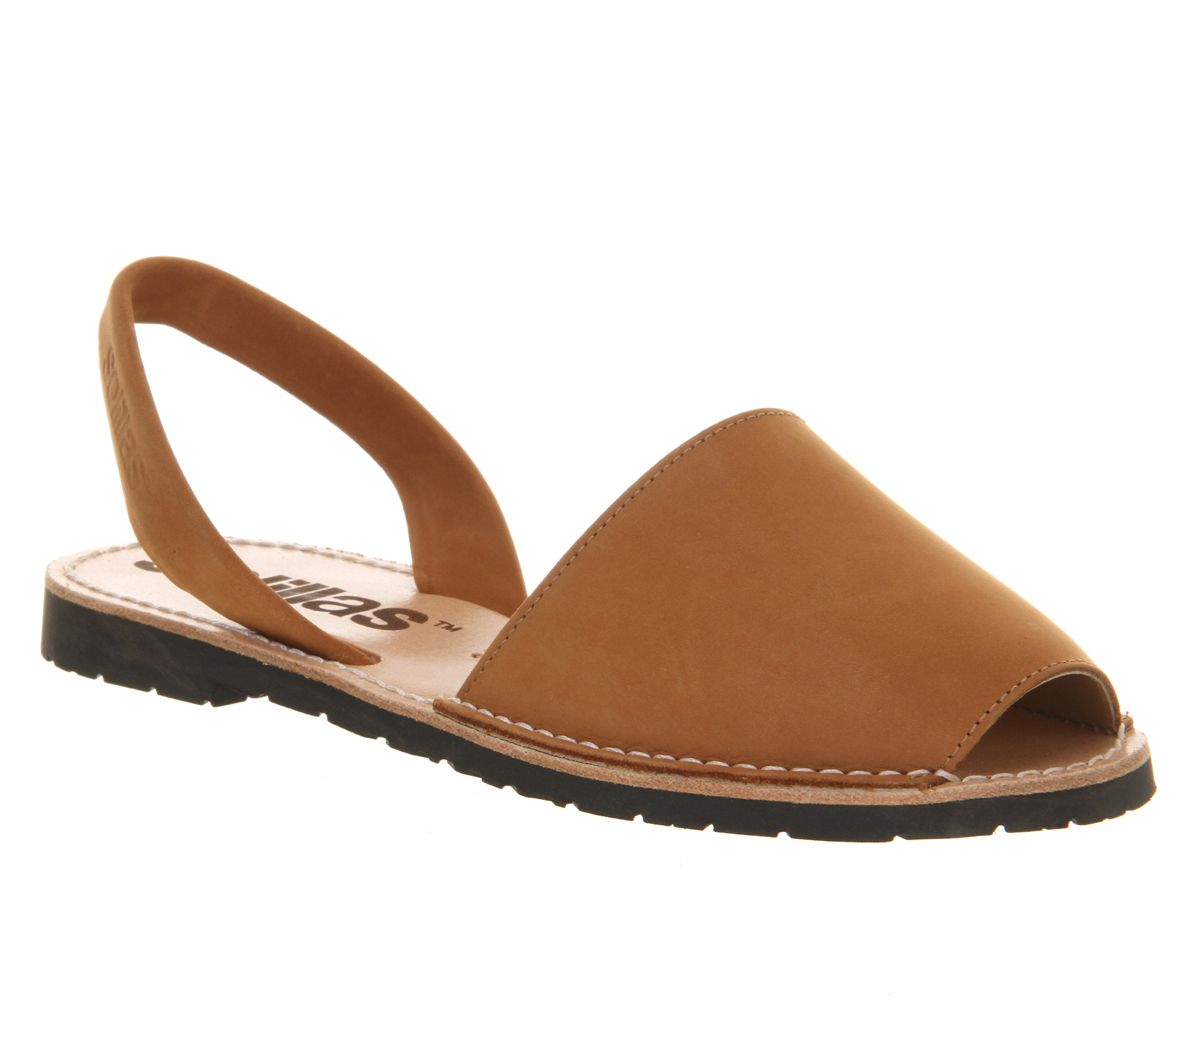 Solillas 2 part sandals, Tan